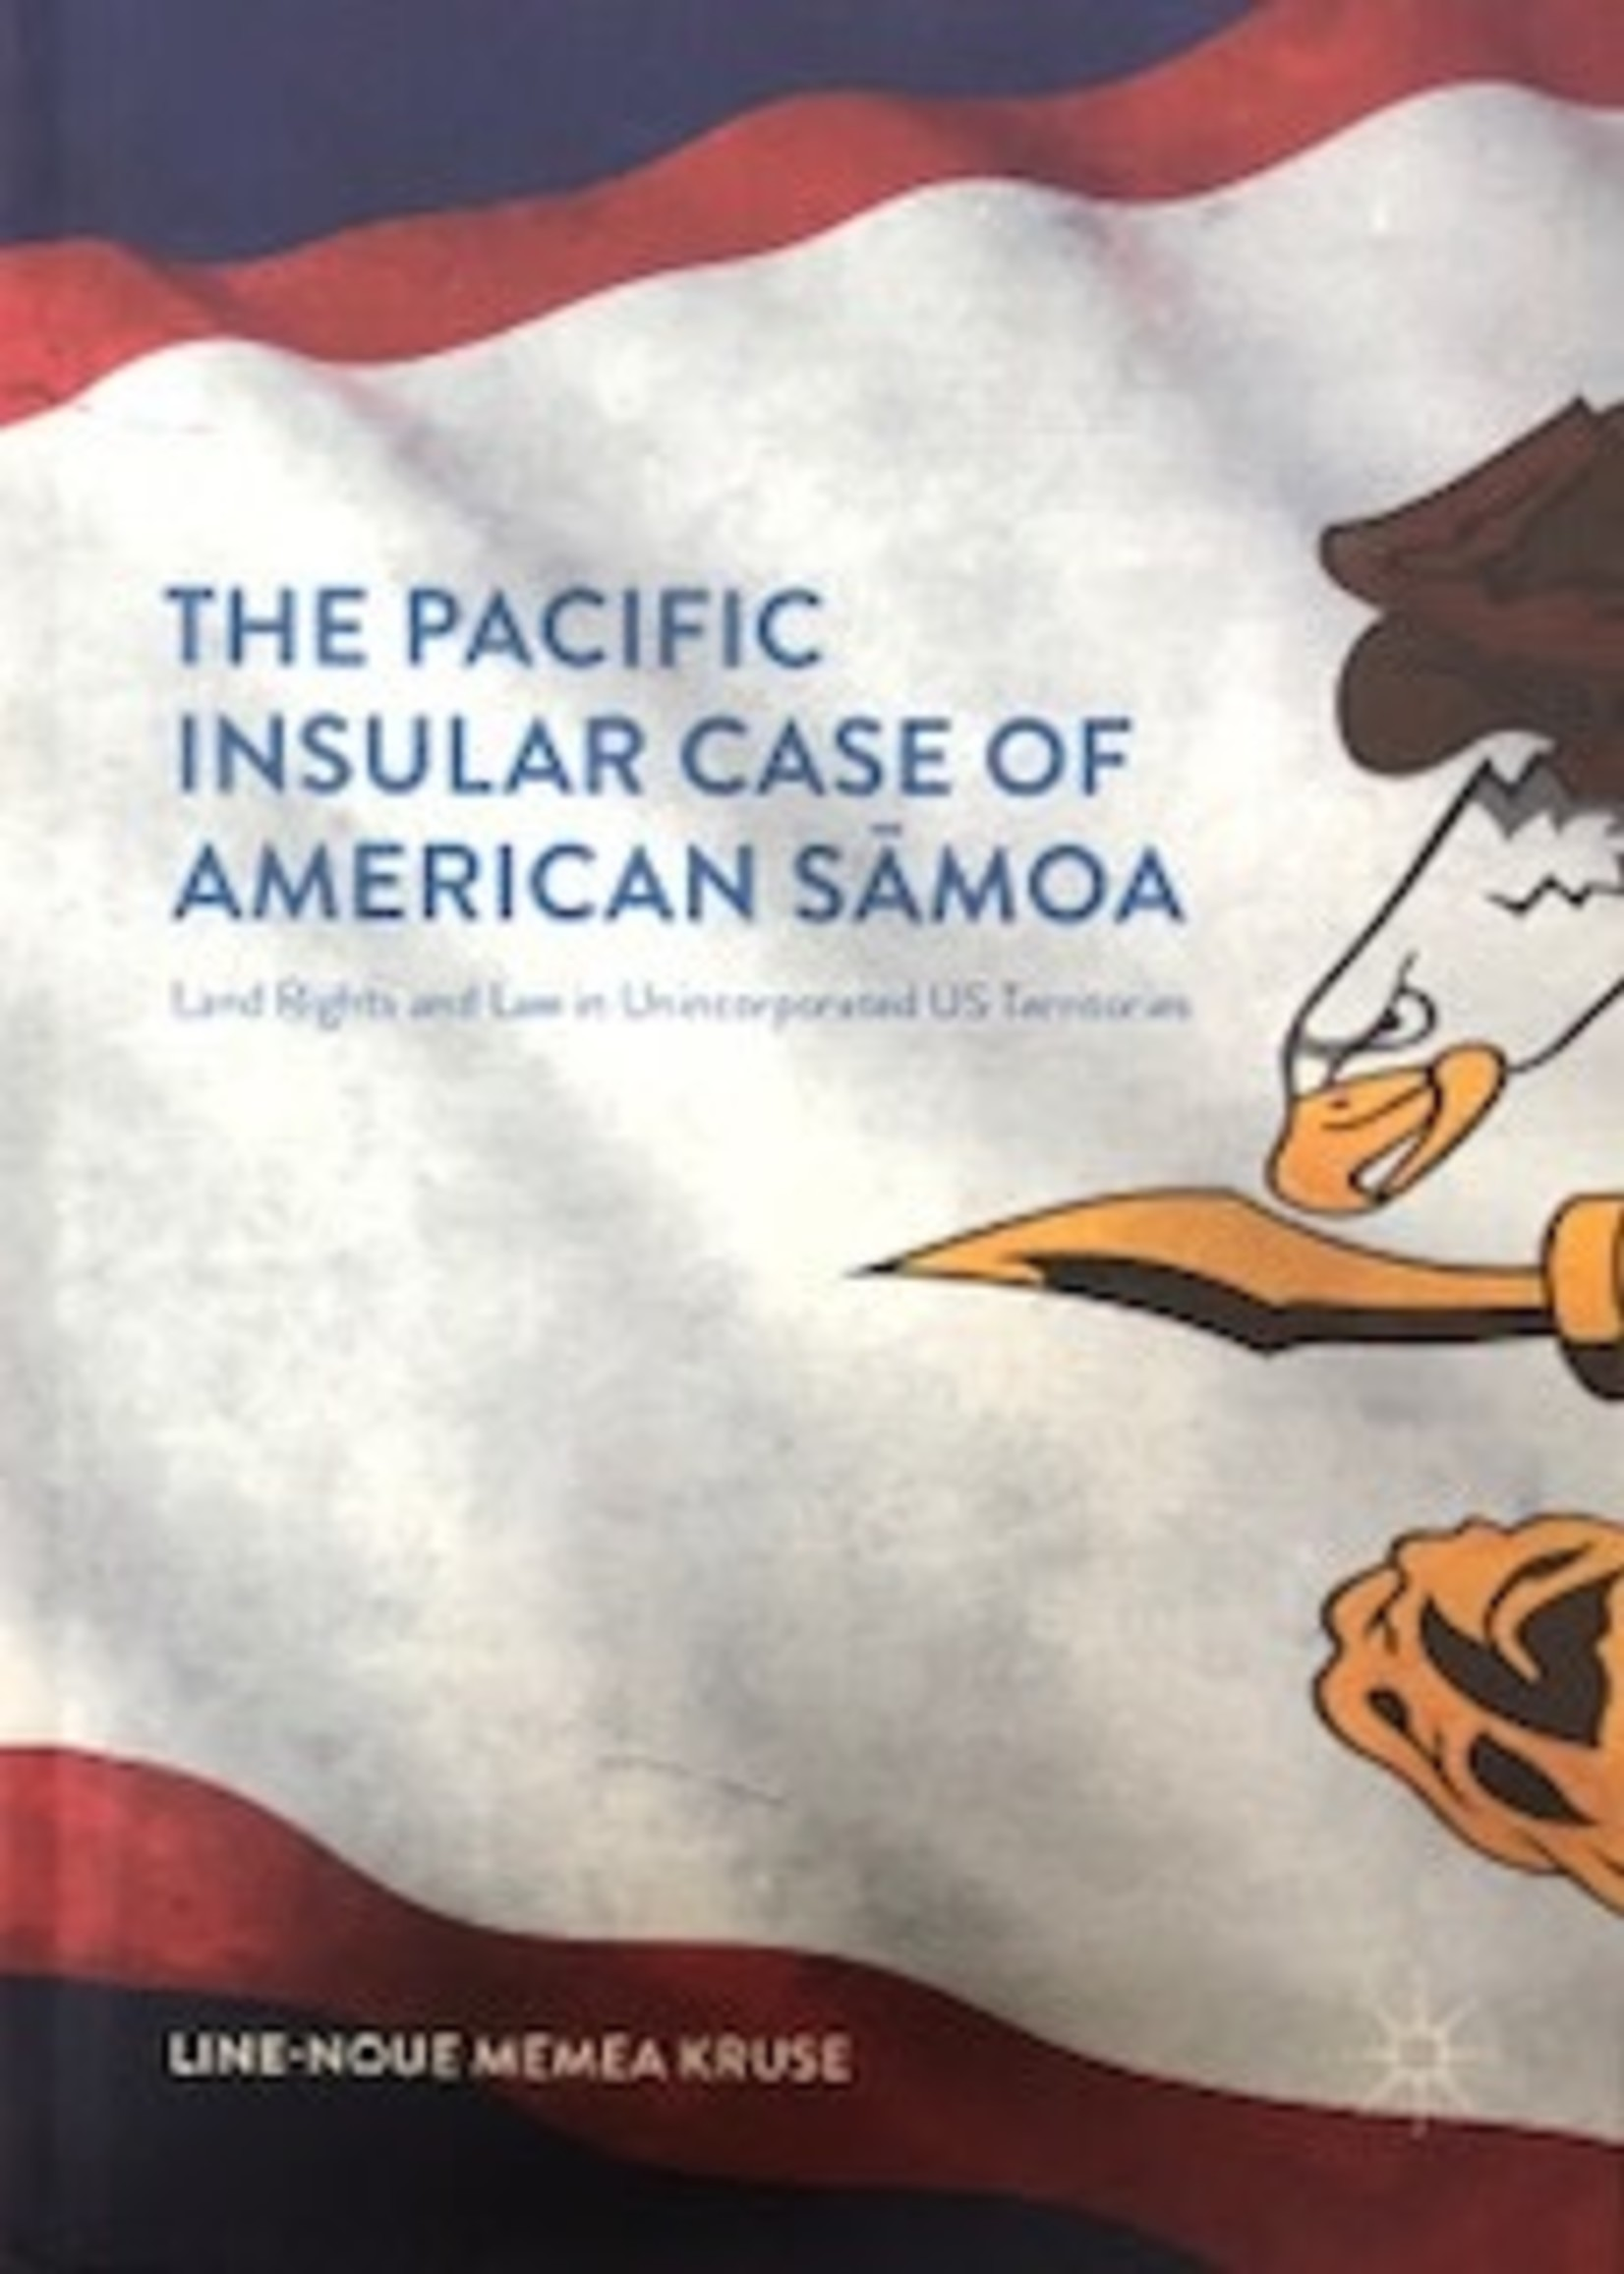 The Pacific Insular Case of American Samoa by Line-Noue Memea Kruse